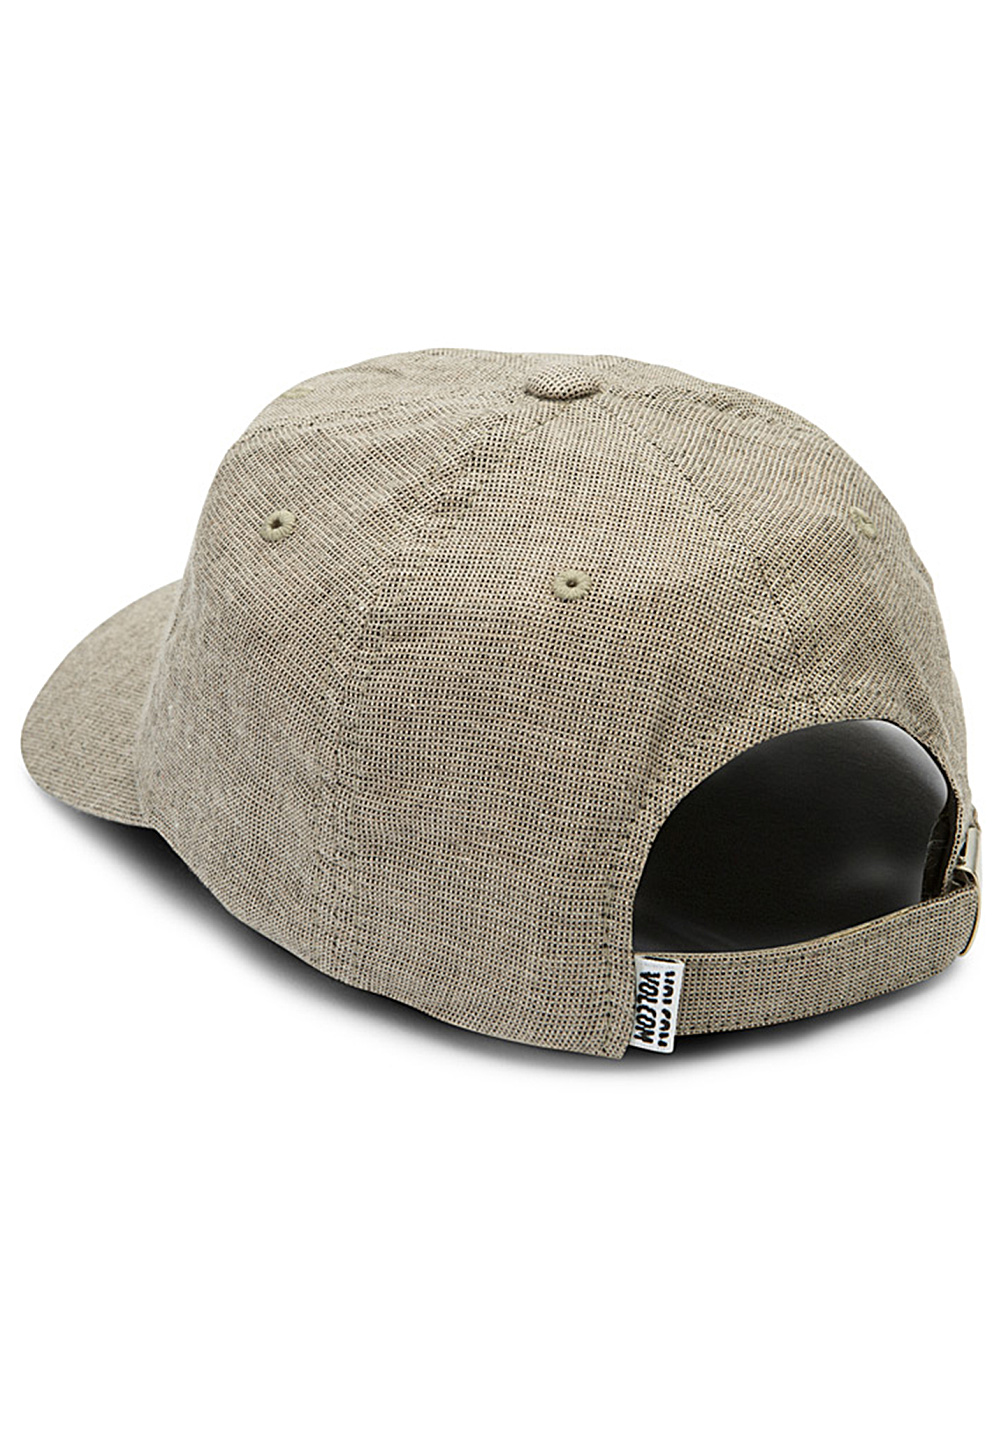 4fd47f3ad59cbd ... Caps · Volcom Pixel Stone - Snapback Cap for Men - Beige. Back to  Overview. 1; 2; 3. Previous. Next